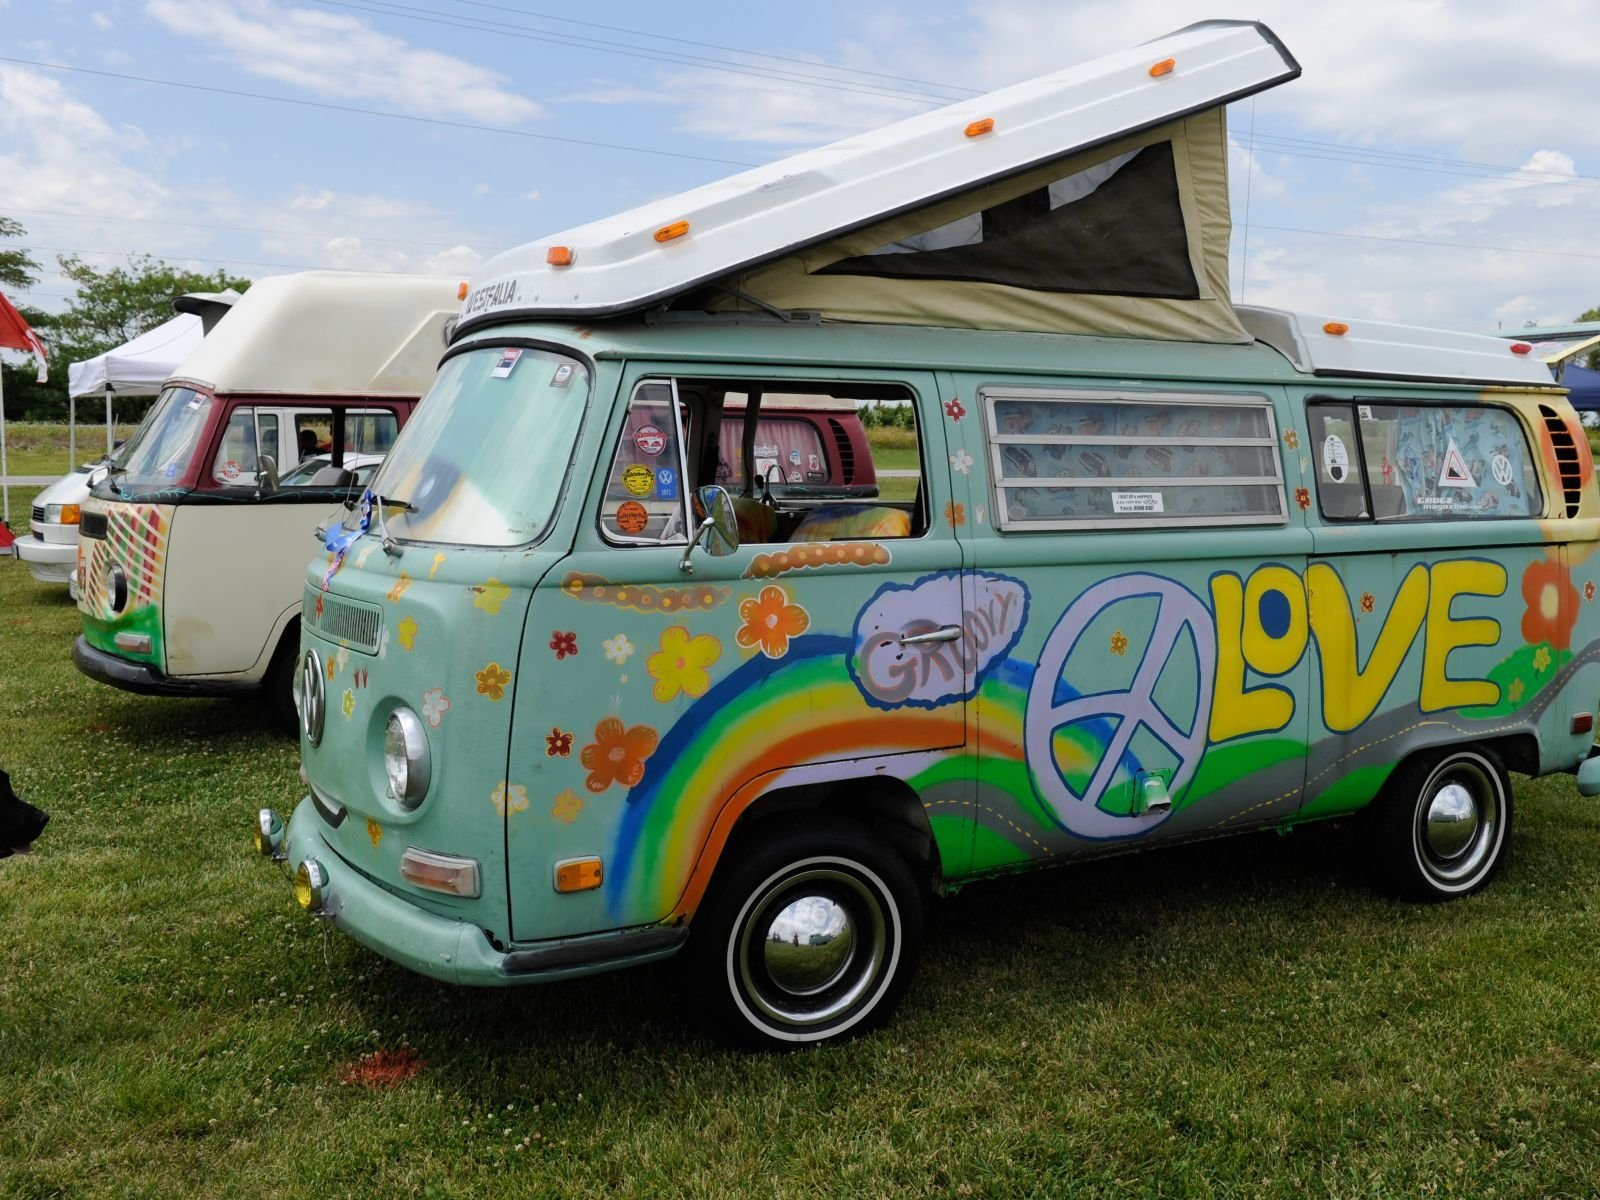 Funfest For Air Cooled Vwlove Peace Van Photo 9 1600x1200